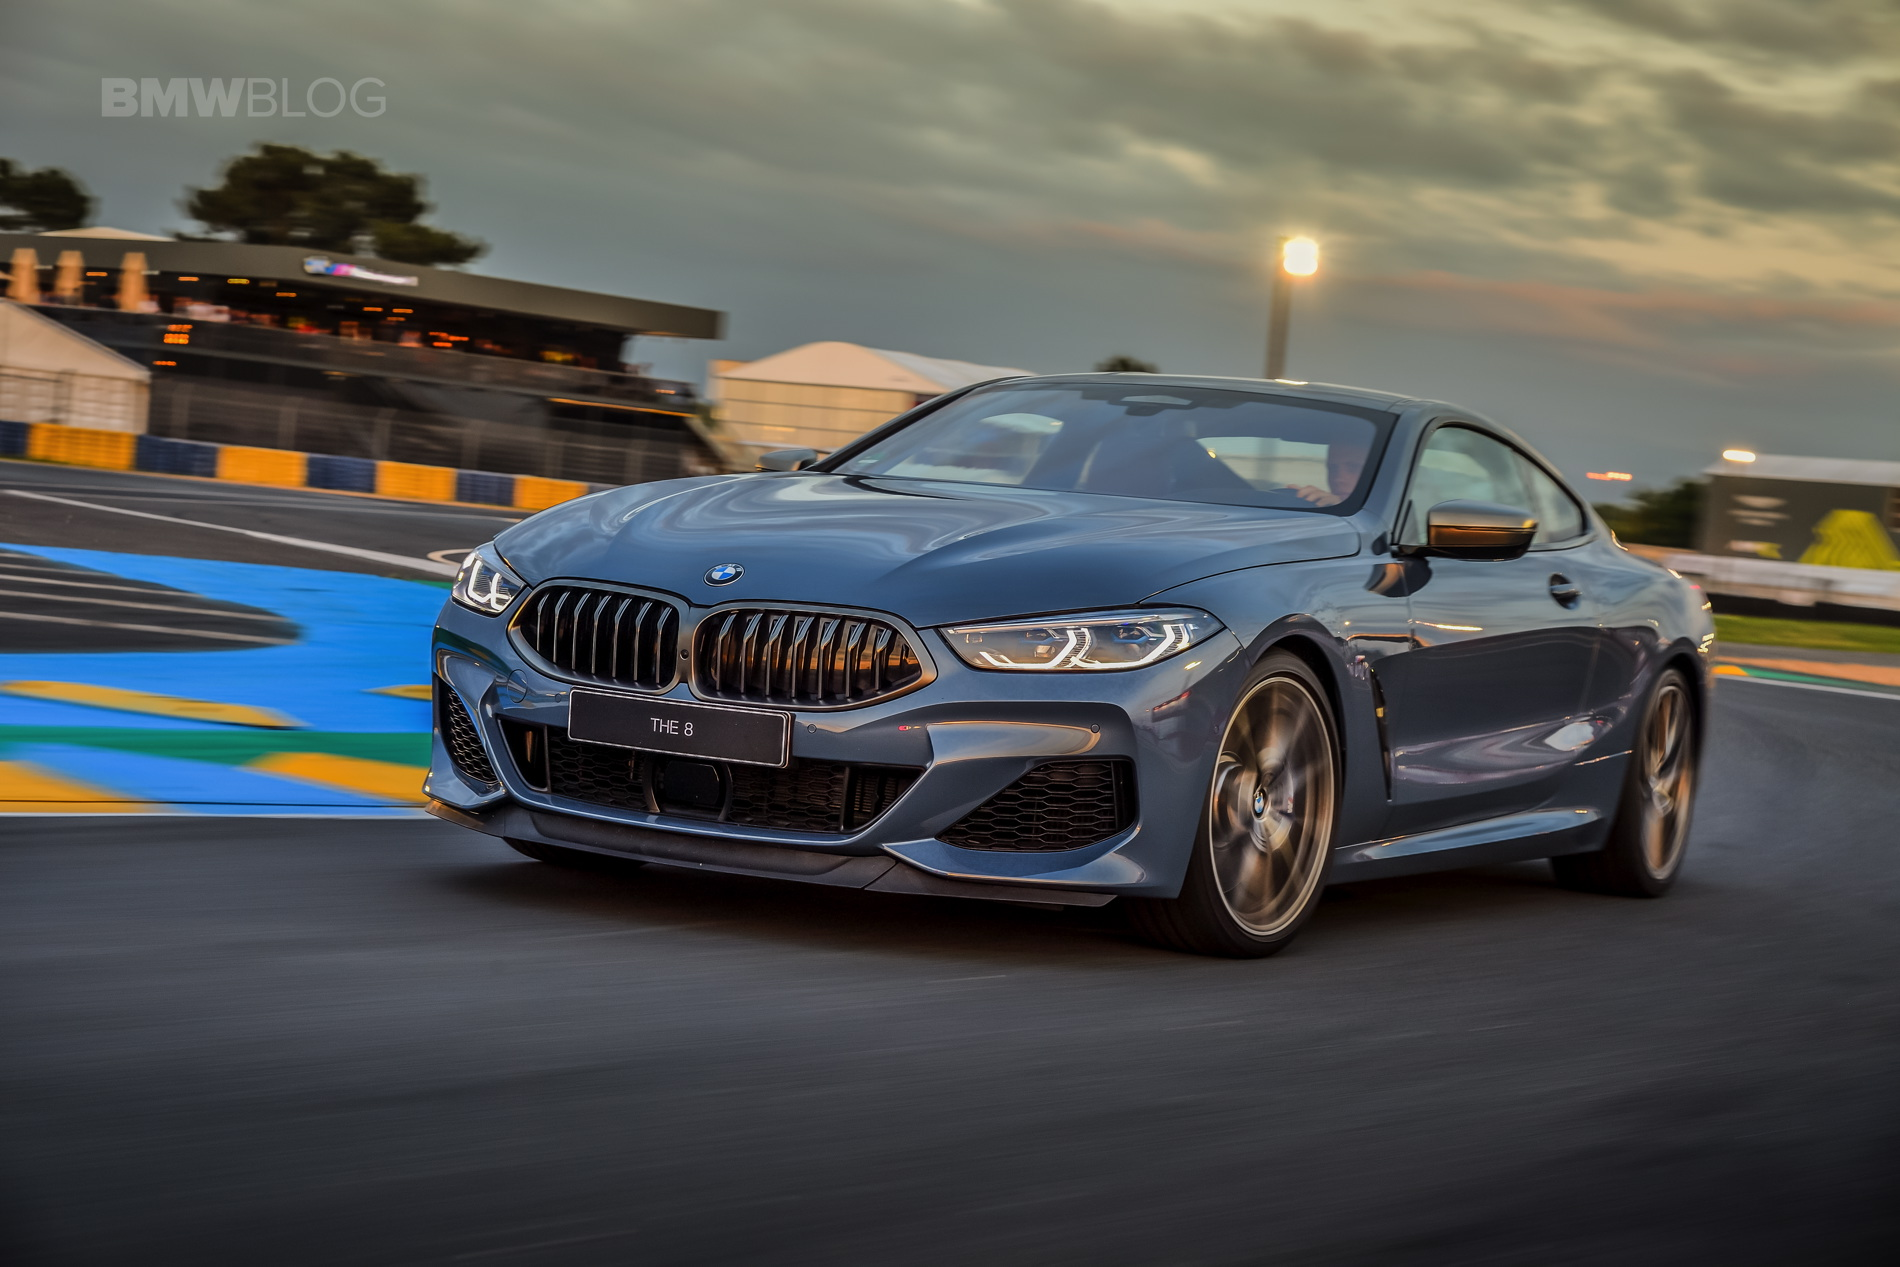 Edmunds drives the BMW M850i